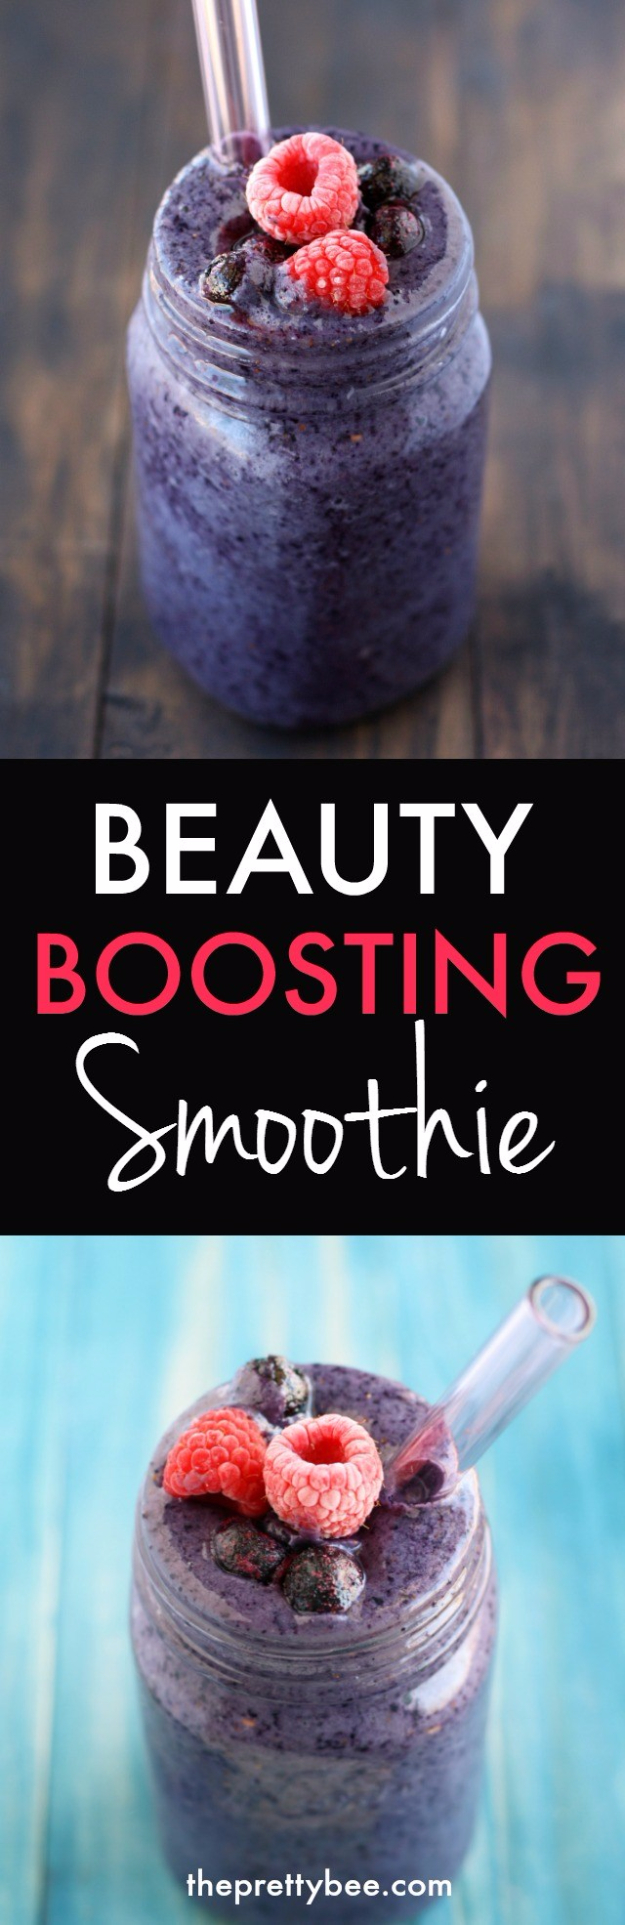 Healthy Smoothie Recipes - Beauty Boosting Smootihie - Easy ideas perfect for breakfast, energy. Low calorie and high protein recipes for weightloss and to lose weight. Simple homemade recipe ideas that kids love. Quick EASY morning recipes before work and school, after workout http://diyjoy.com/healthy-smoothie-recipes